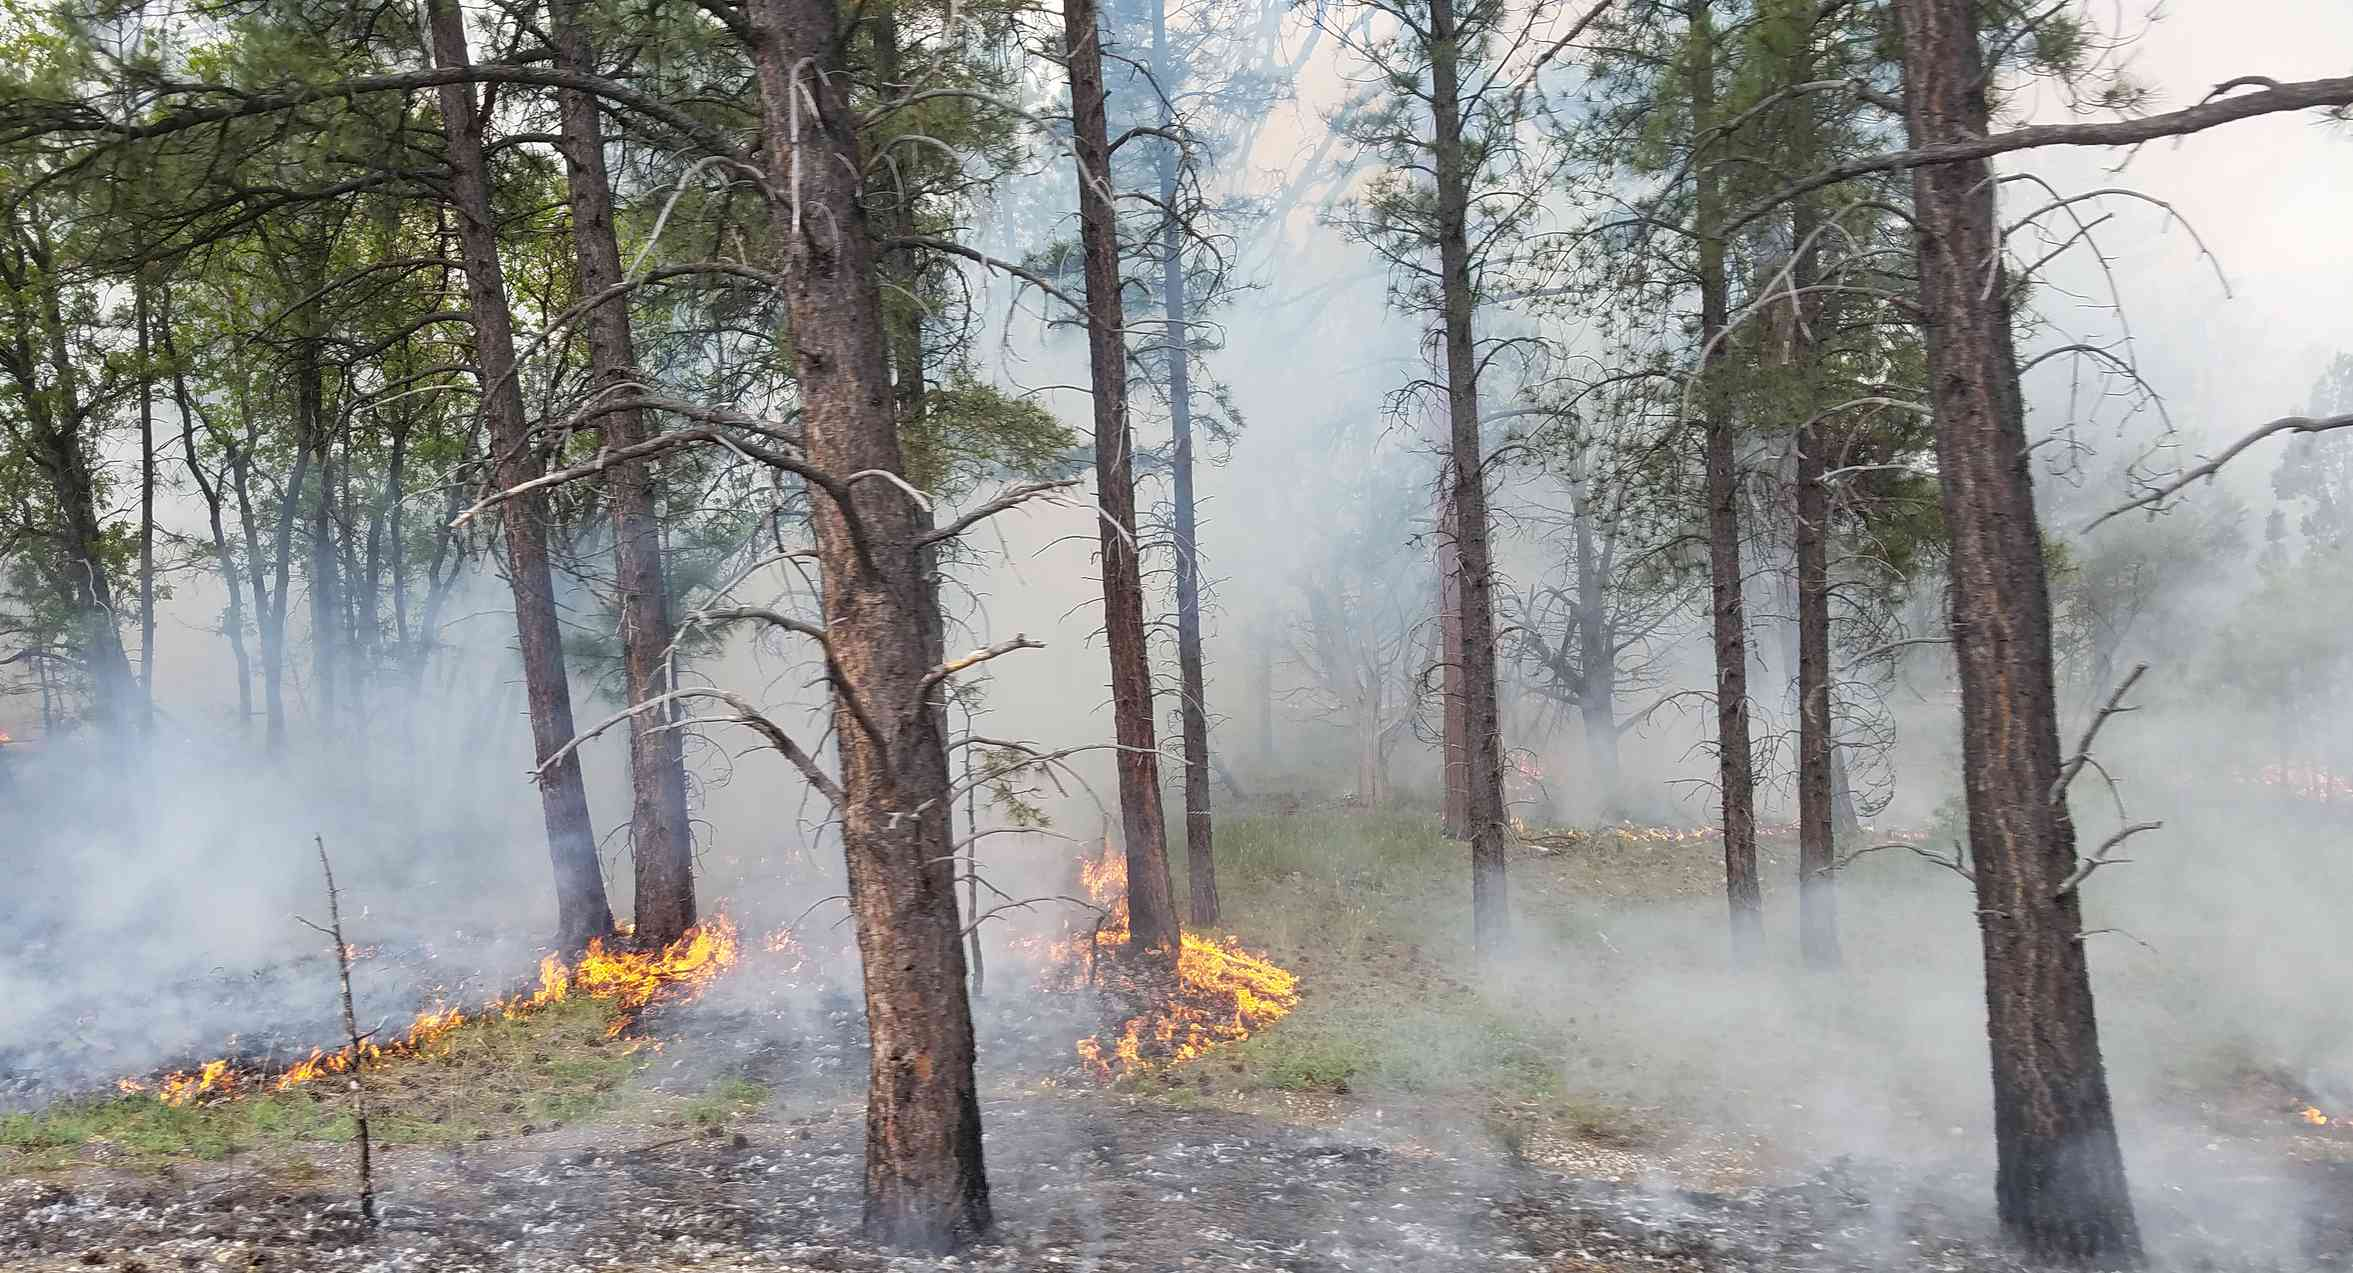 Park rangers perform controlled fires throughout the park